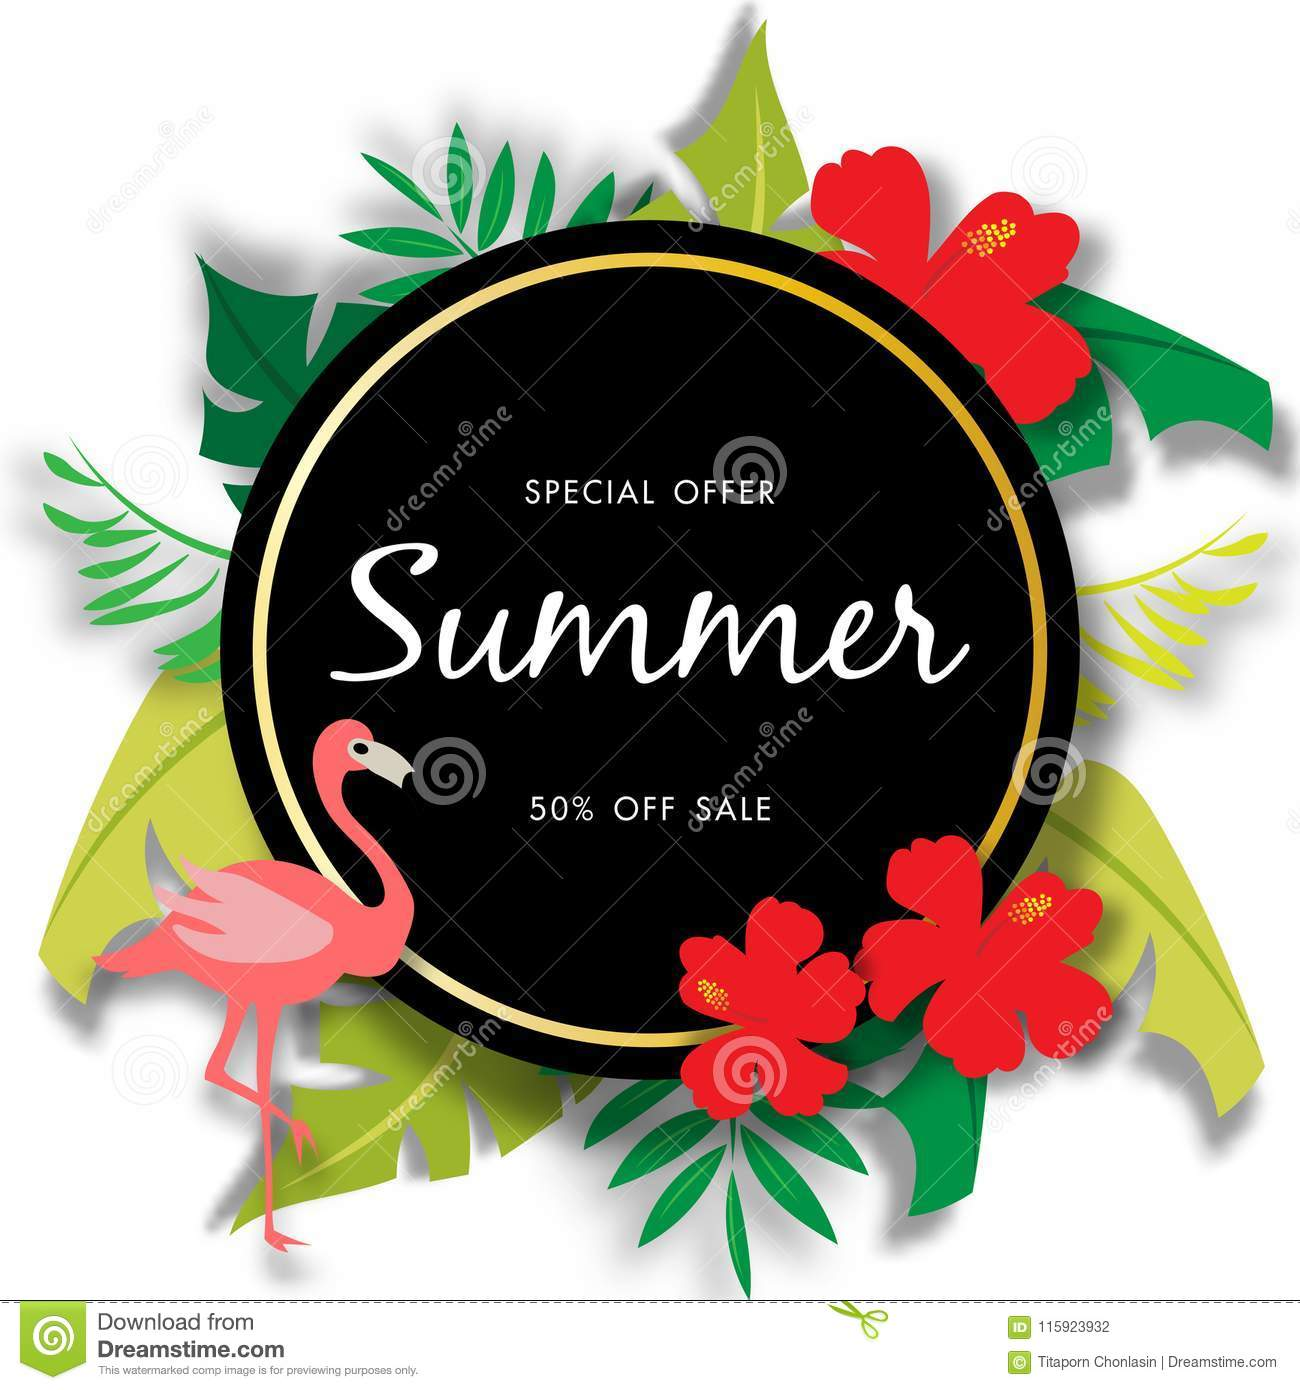 Summer sale background with beautiful flower, vector illustration template